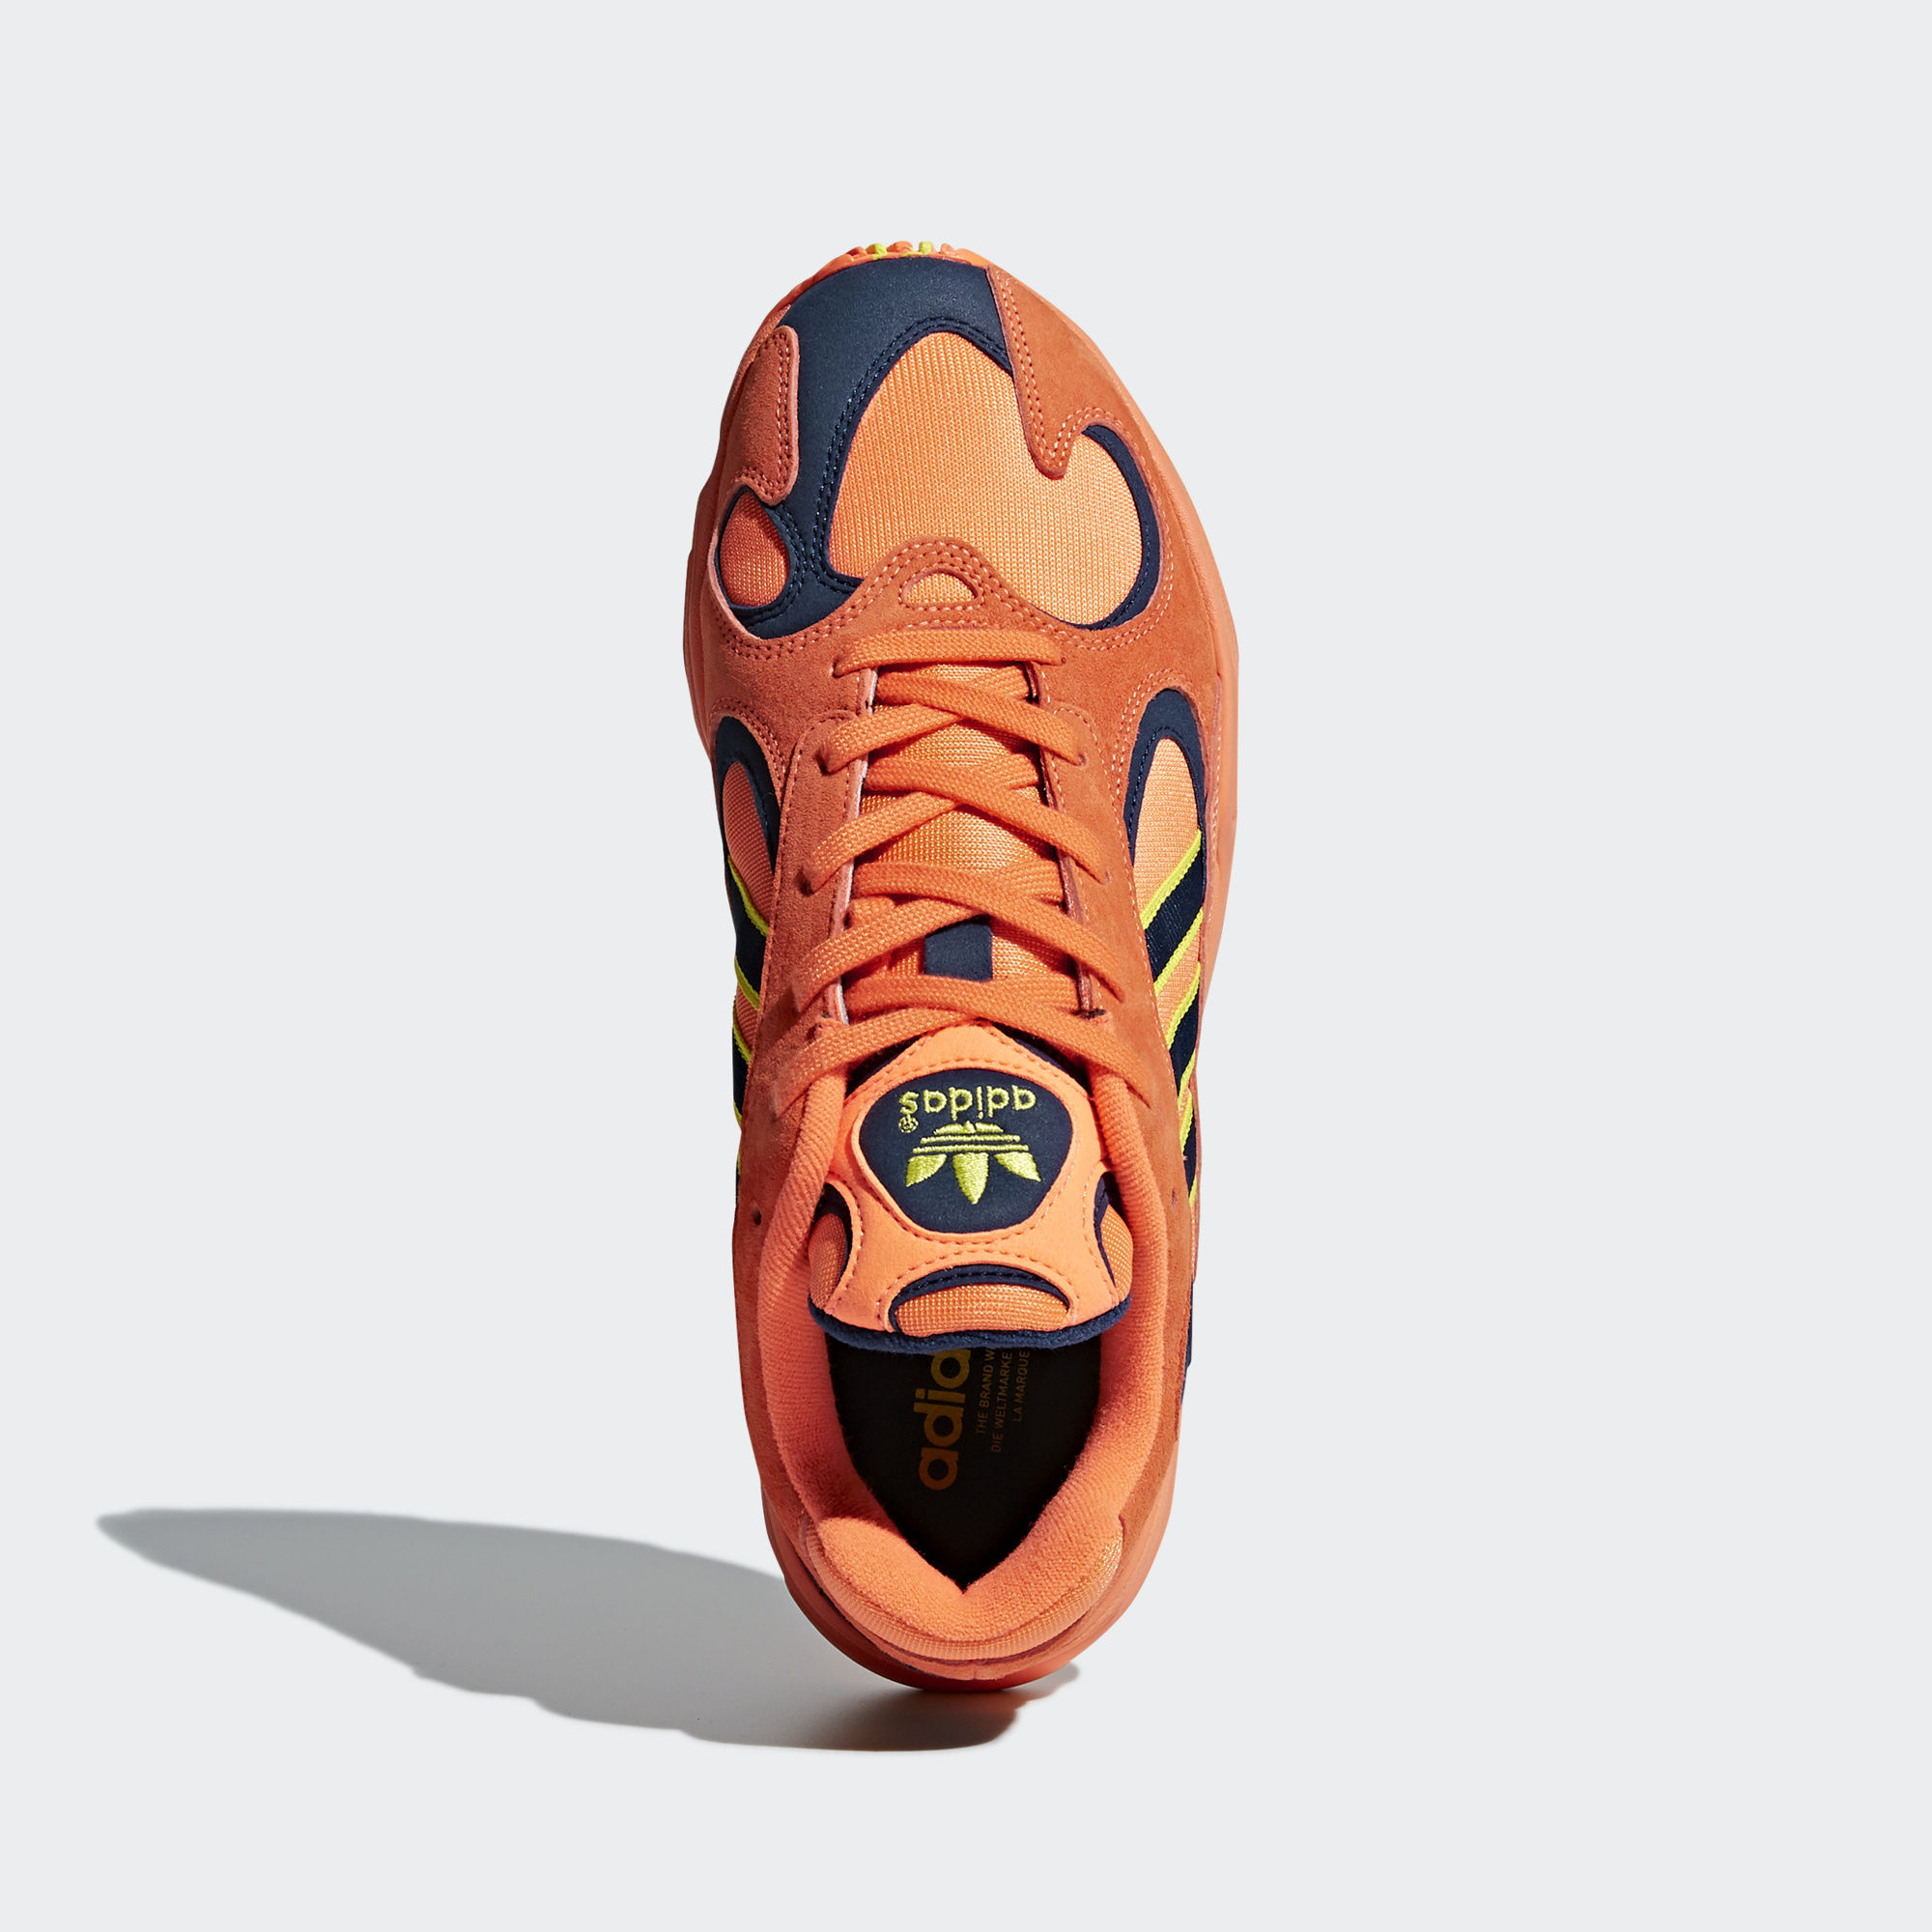 Adidas Yung 1 Hi-Res Orange / Hi-Res Orange / Shock Yellow (B37613)